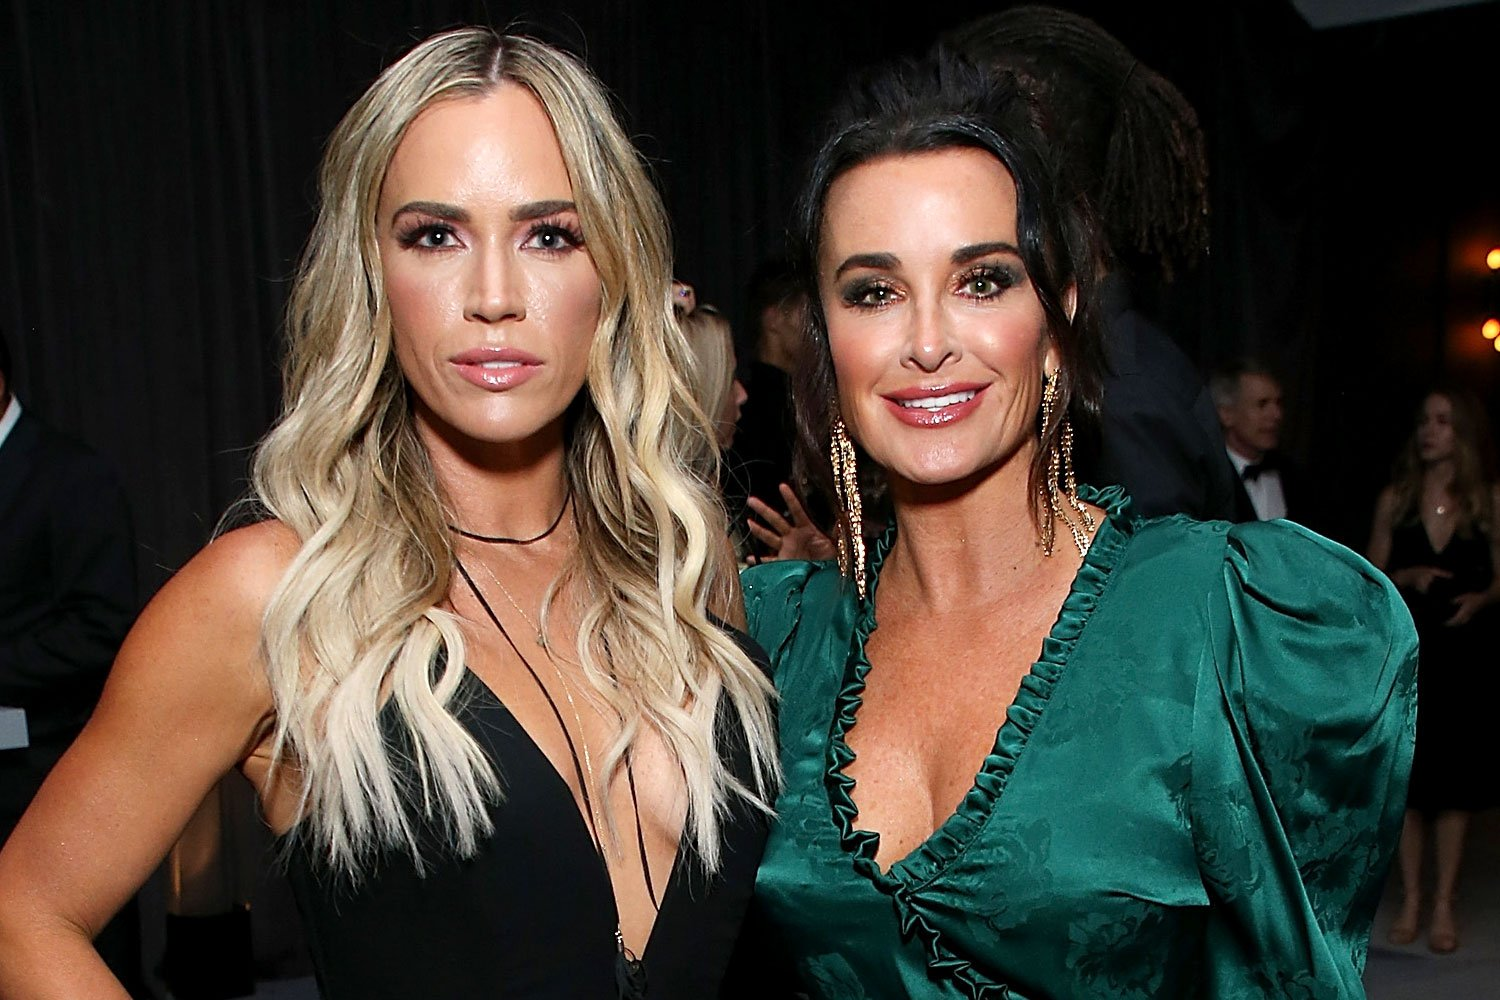 Kyle Richards Writes Heartfelt Message For Teddi Mellencamp After She Was Fired From RHOBH